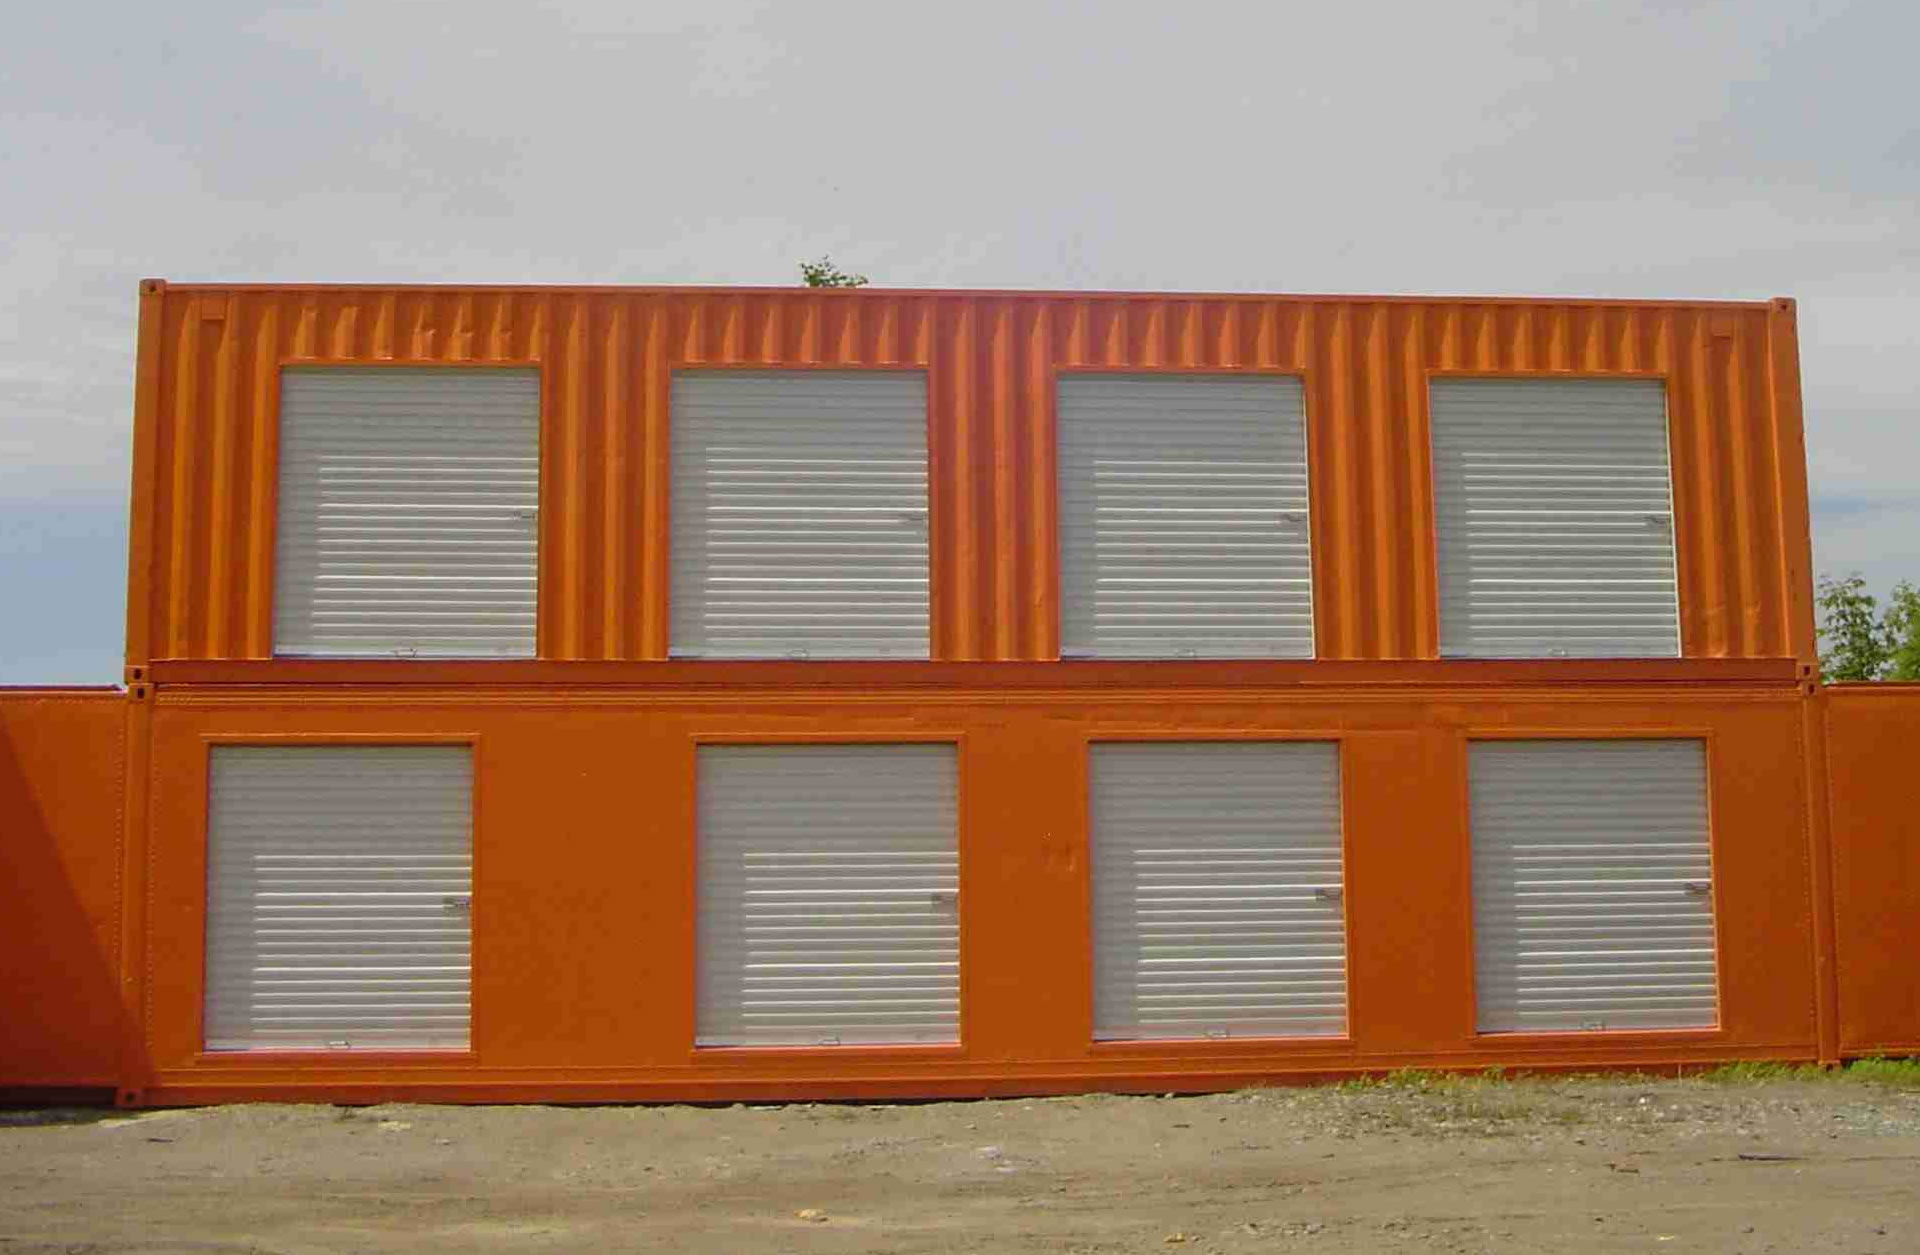 Converted Shipping Container Home Storage Units Container Kings Thailand - Containers For Storage